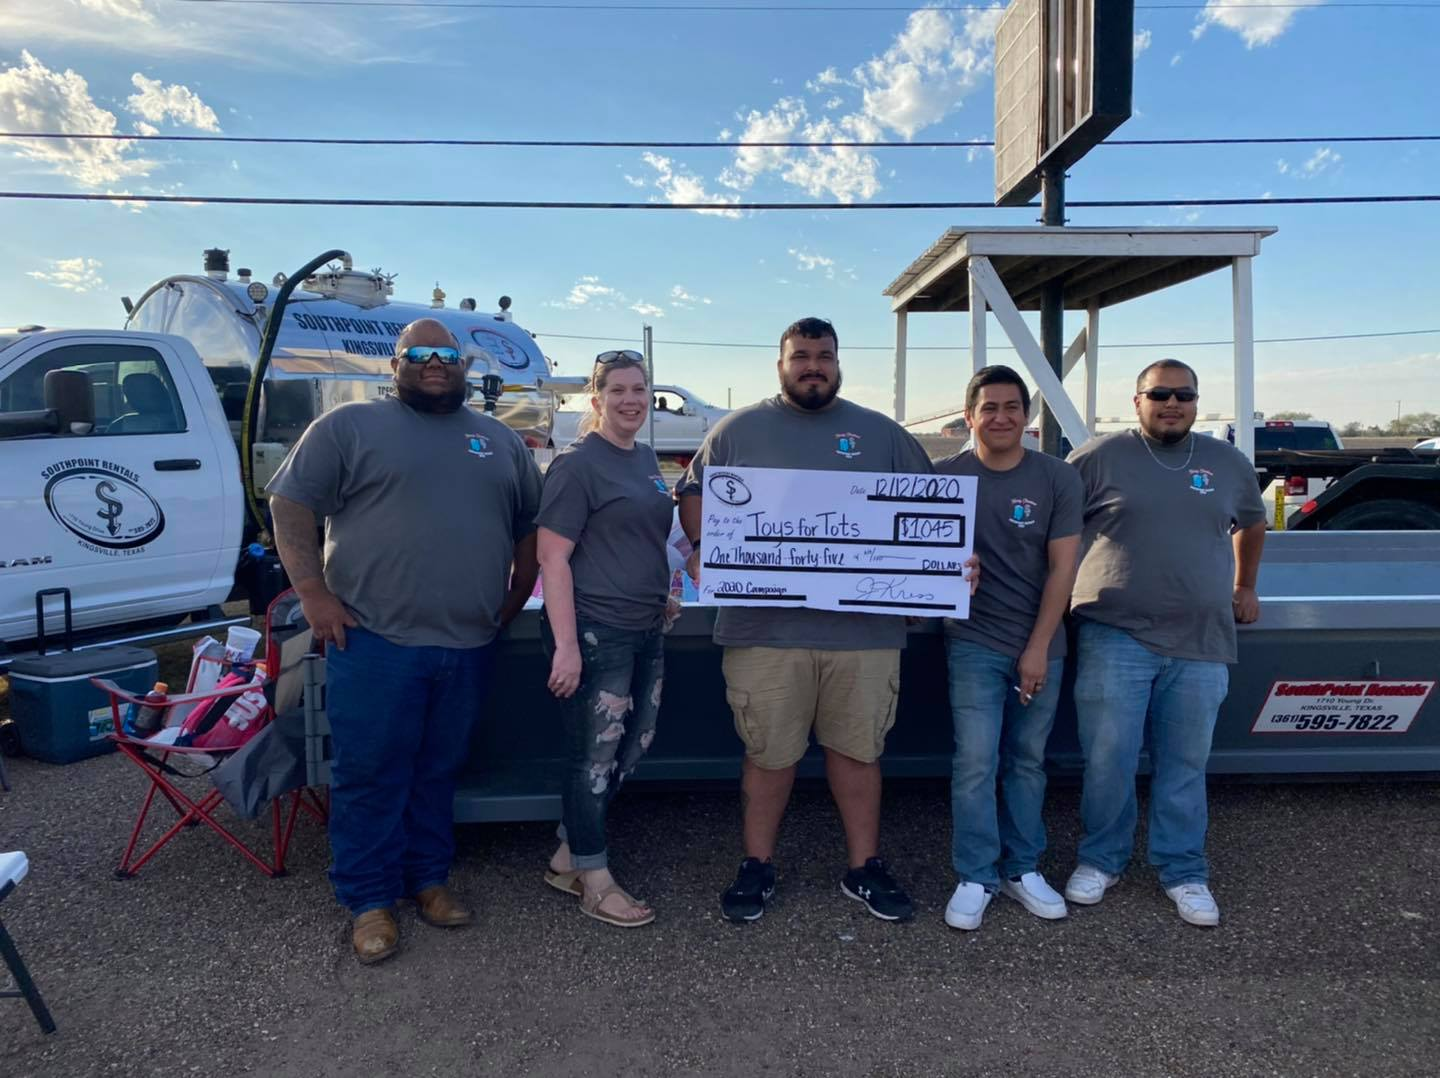 Group photo with check for Toys for Tots